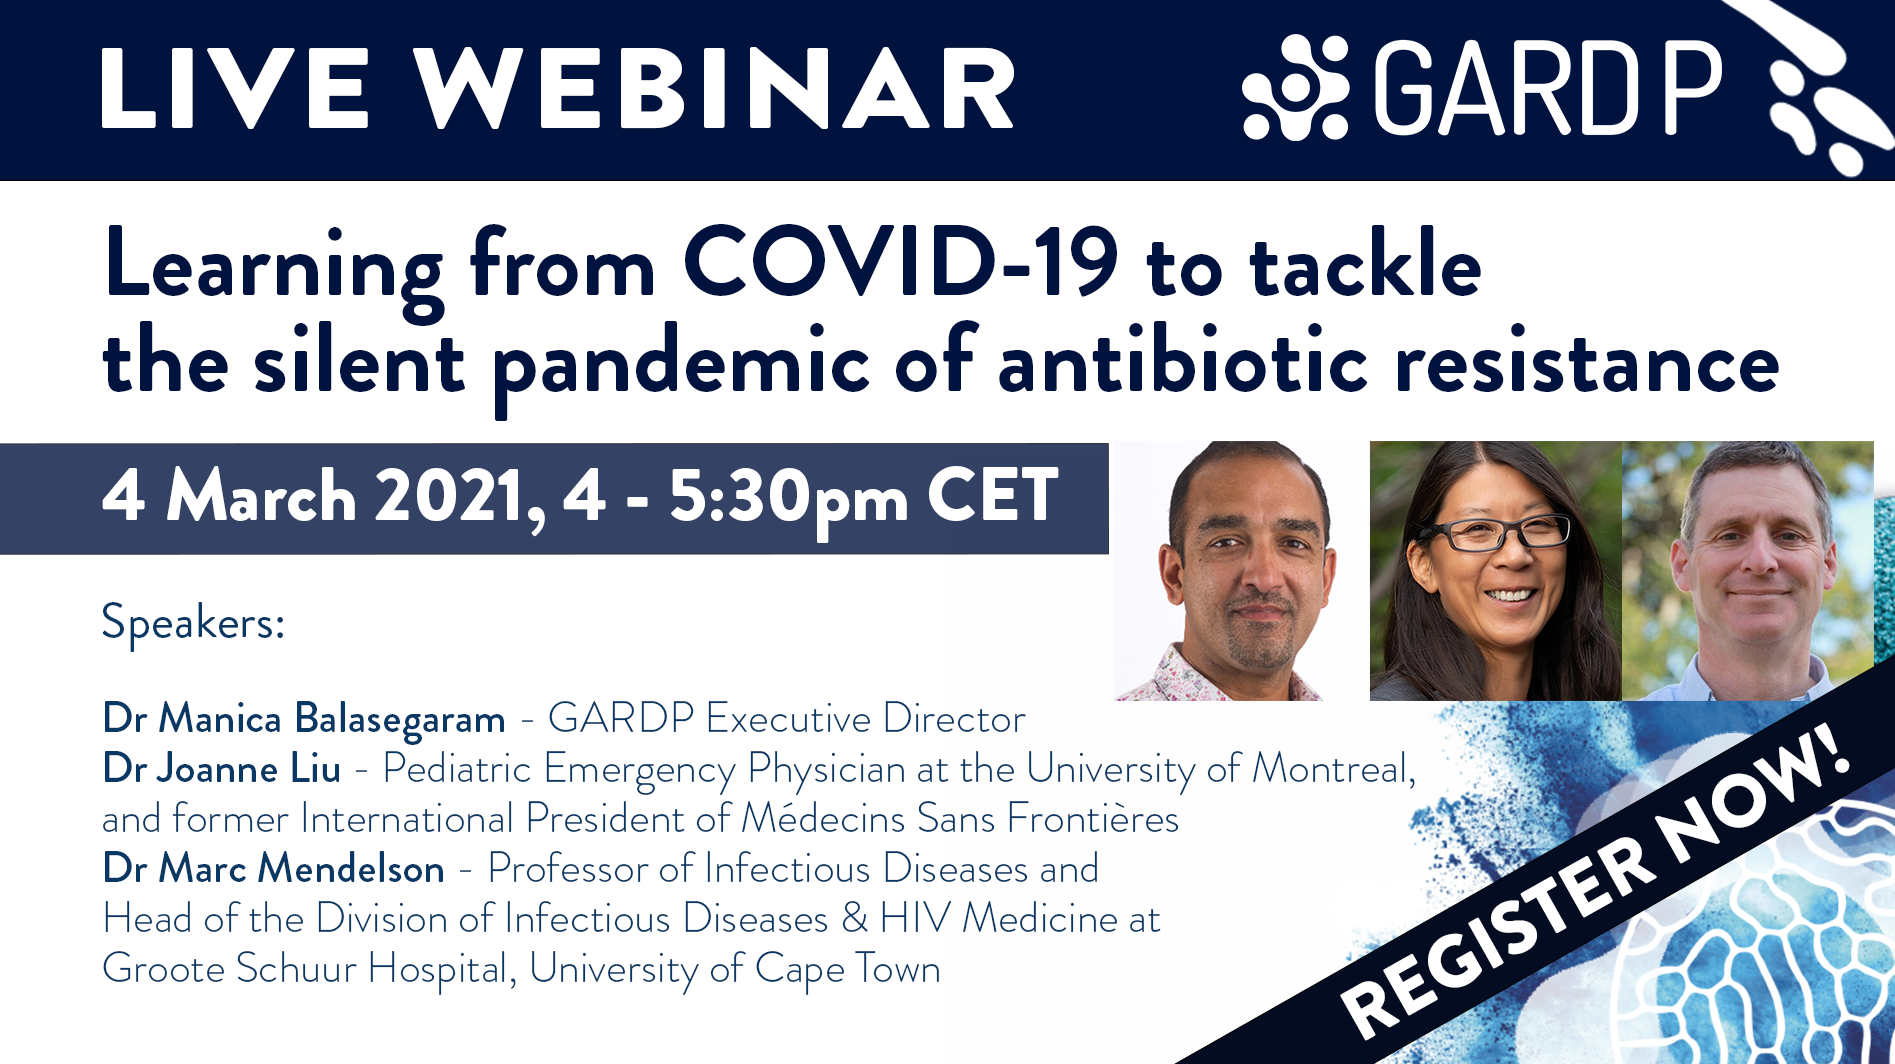 Webinar: Learning from COVID-19 to tackle the silent pandemic of antibiotic resistance